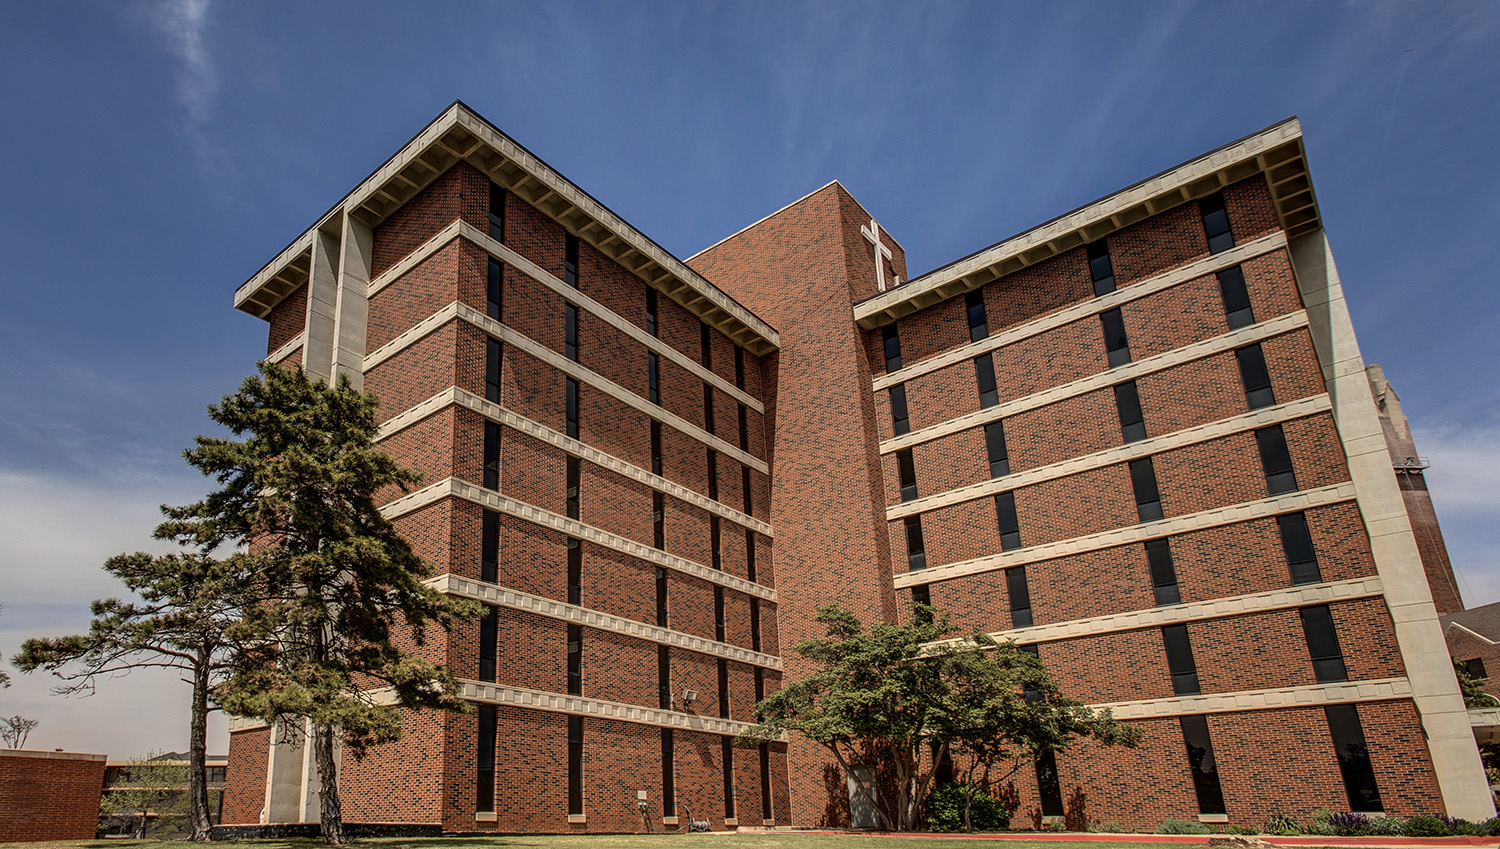 Walker Hall, a seven-story brick freshman dormitory on OKCU's Campus